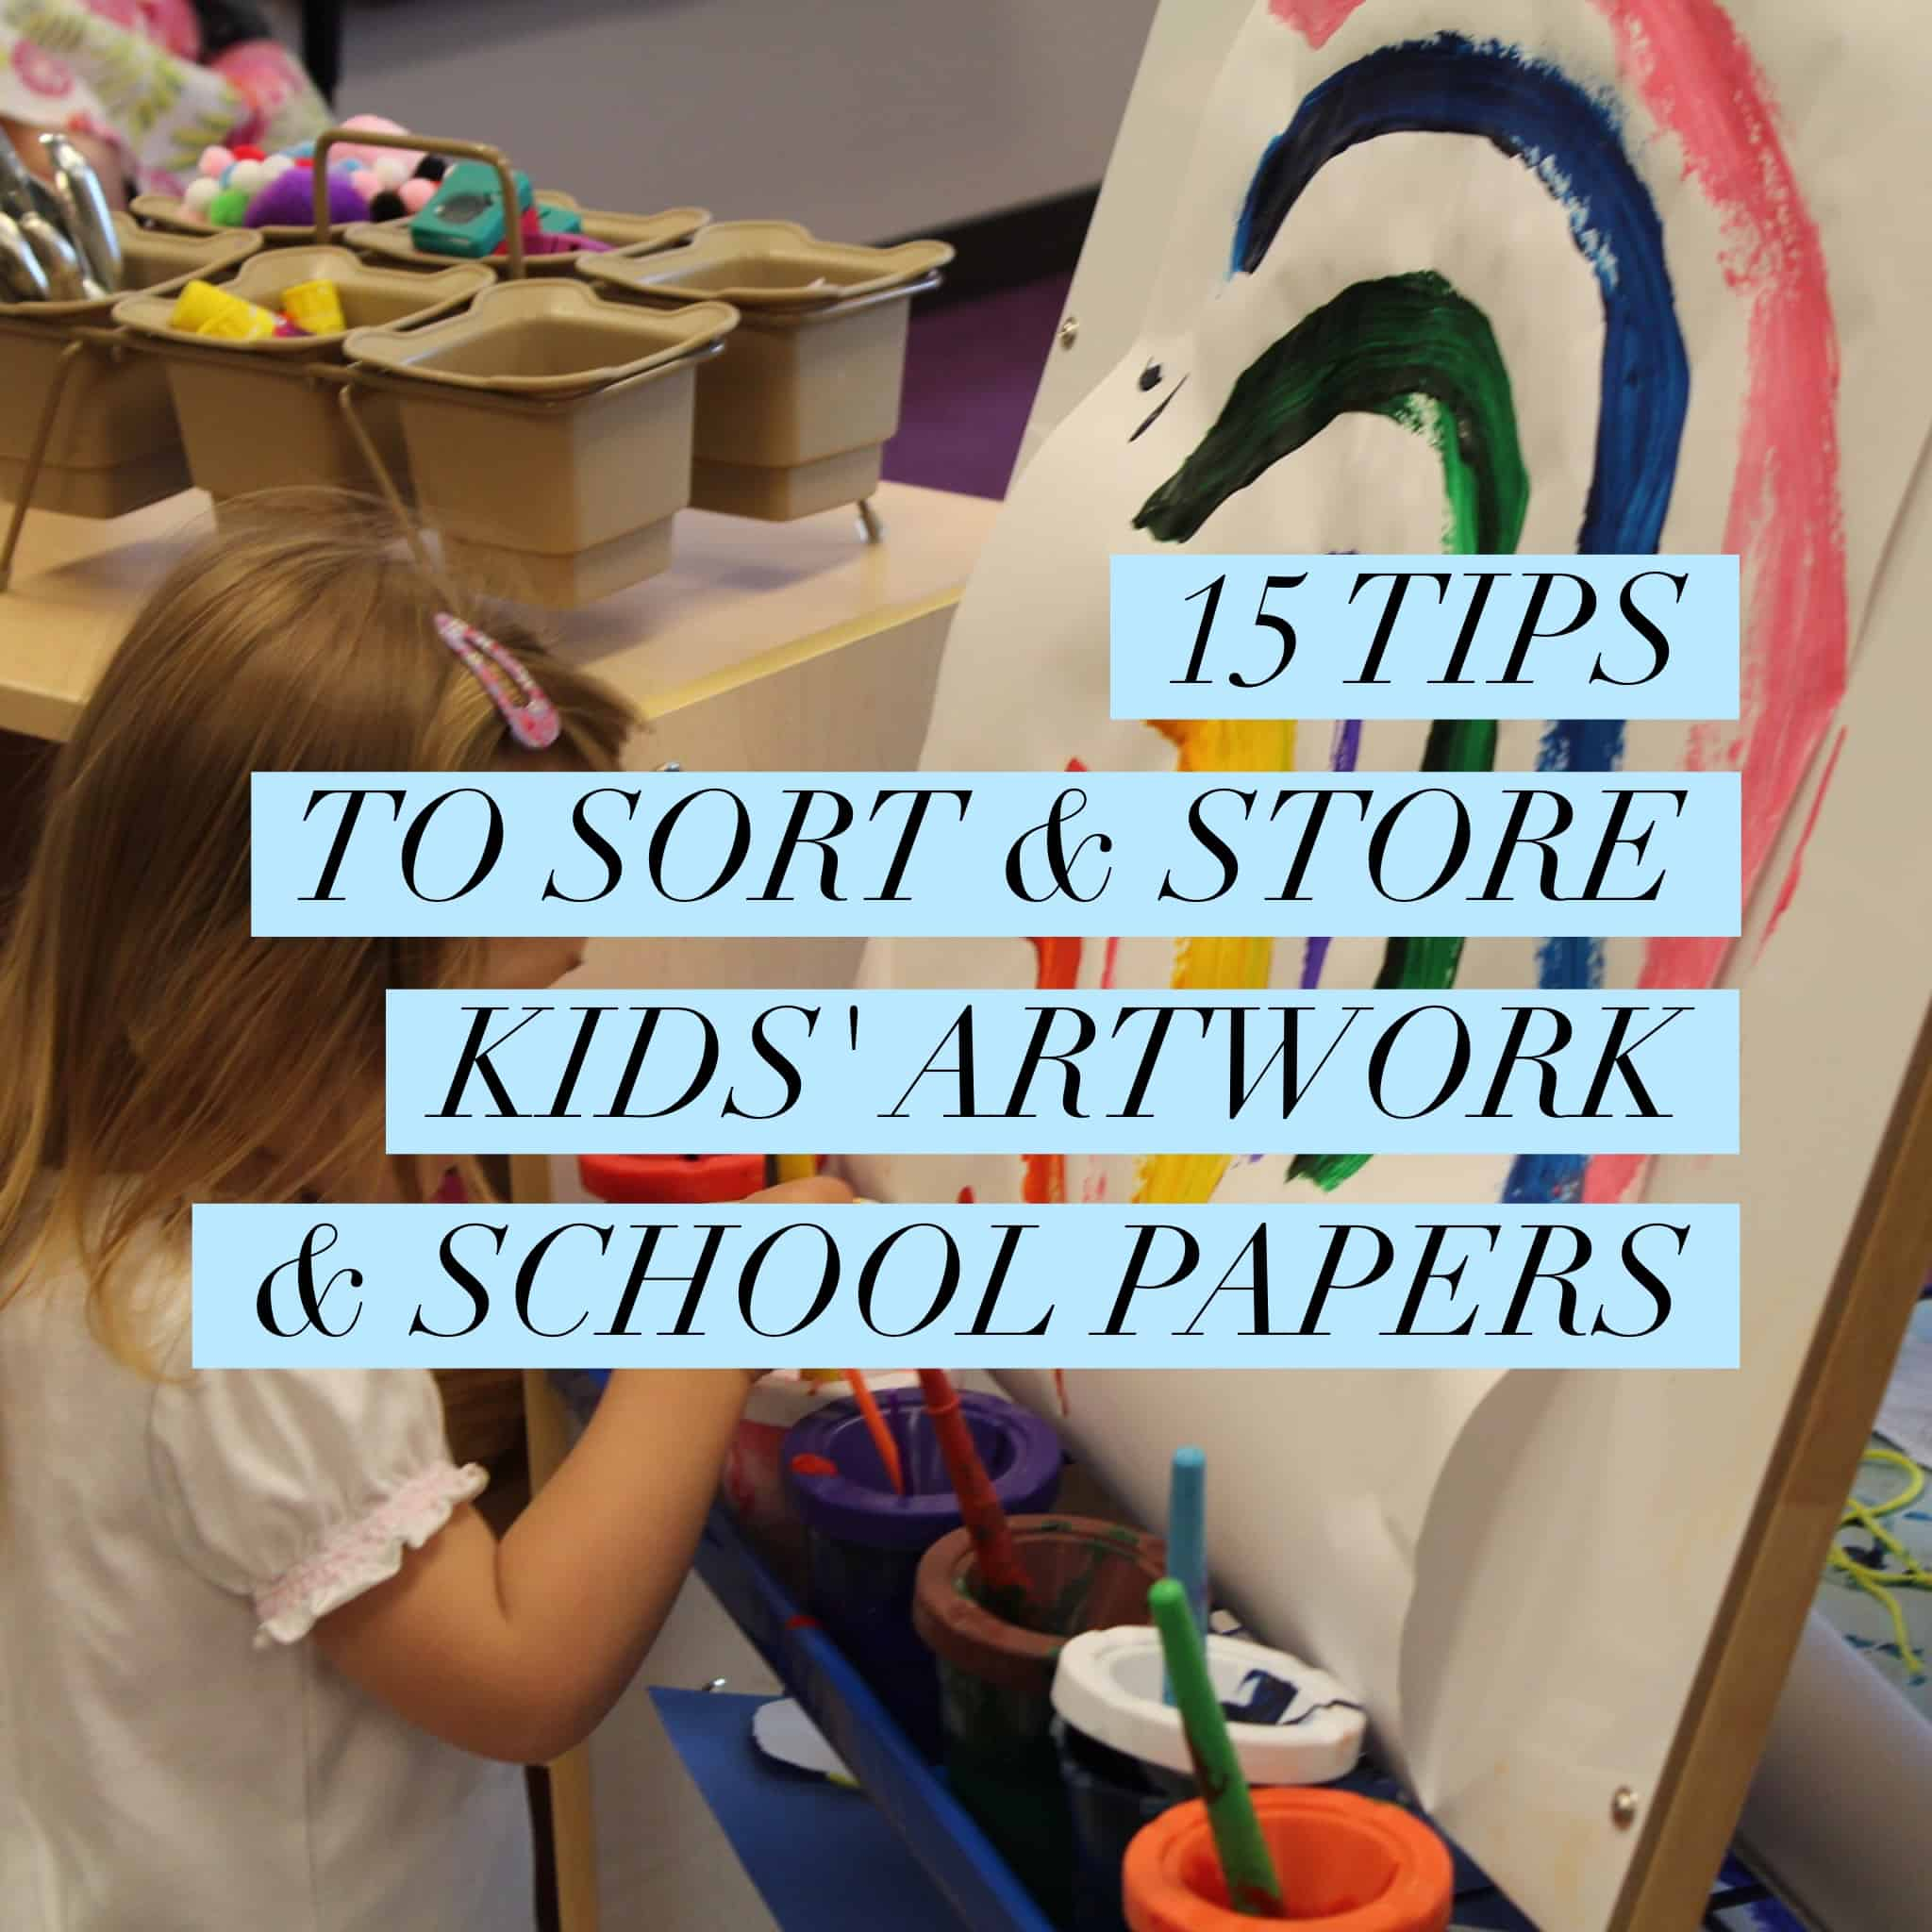 15 Tips to Sort & Store Kids' Artwork & School Papers title